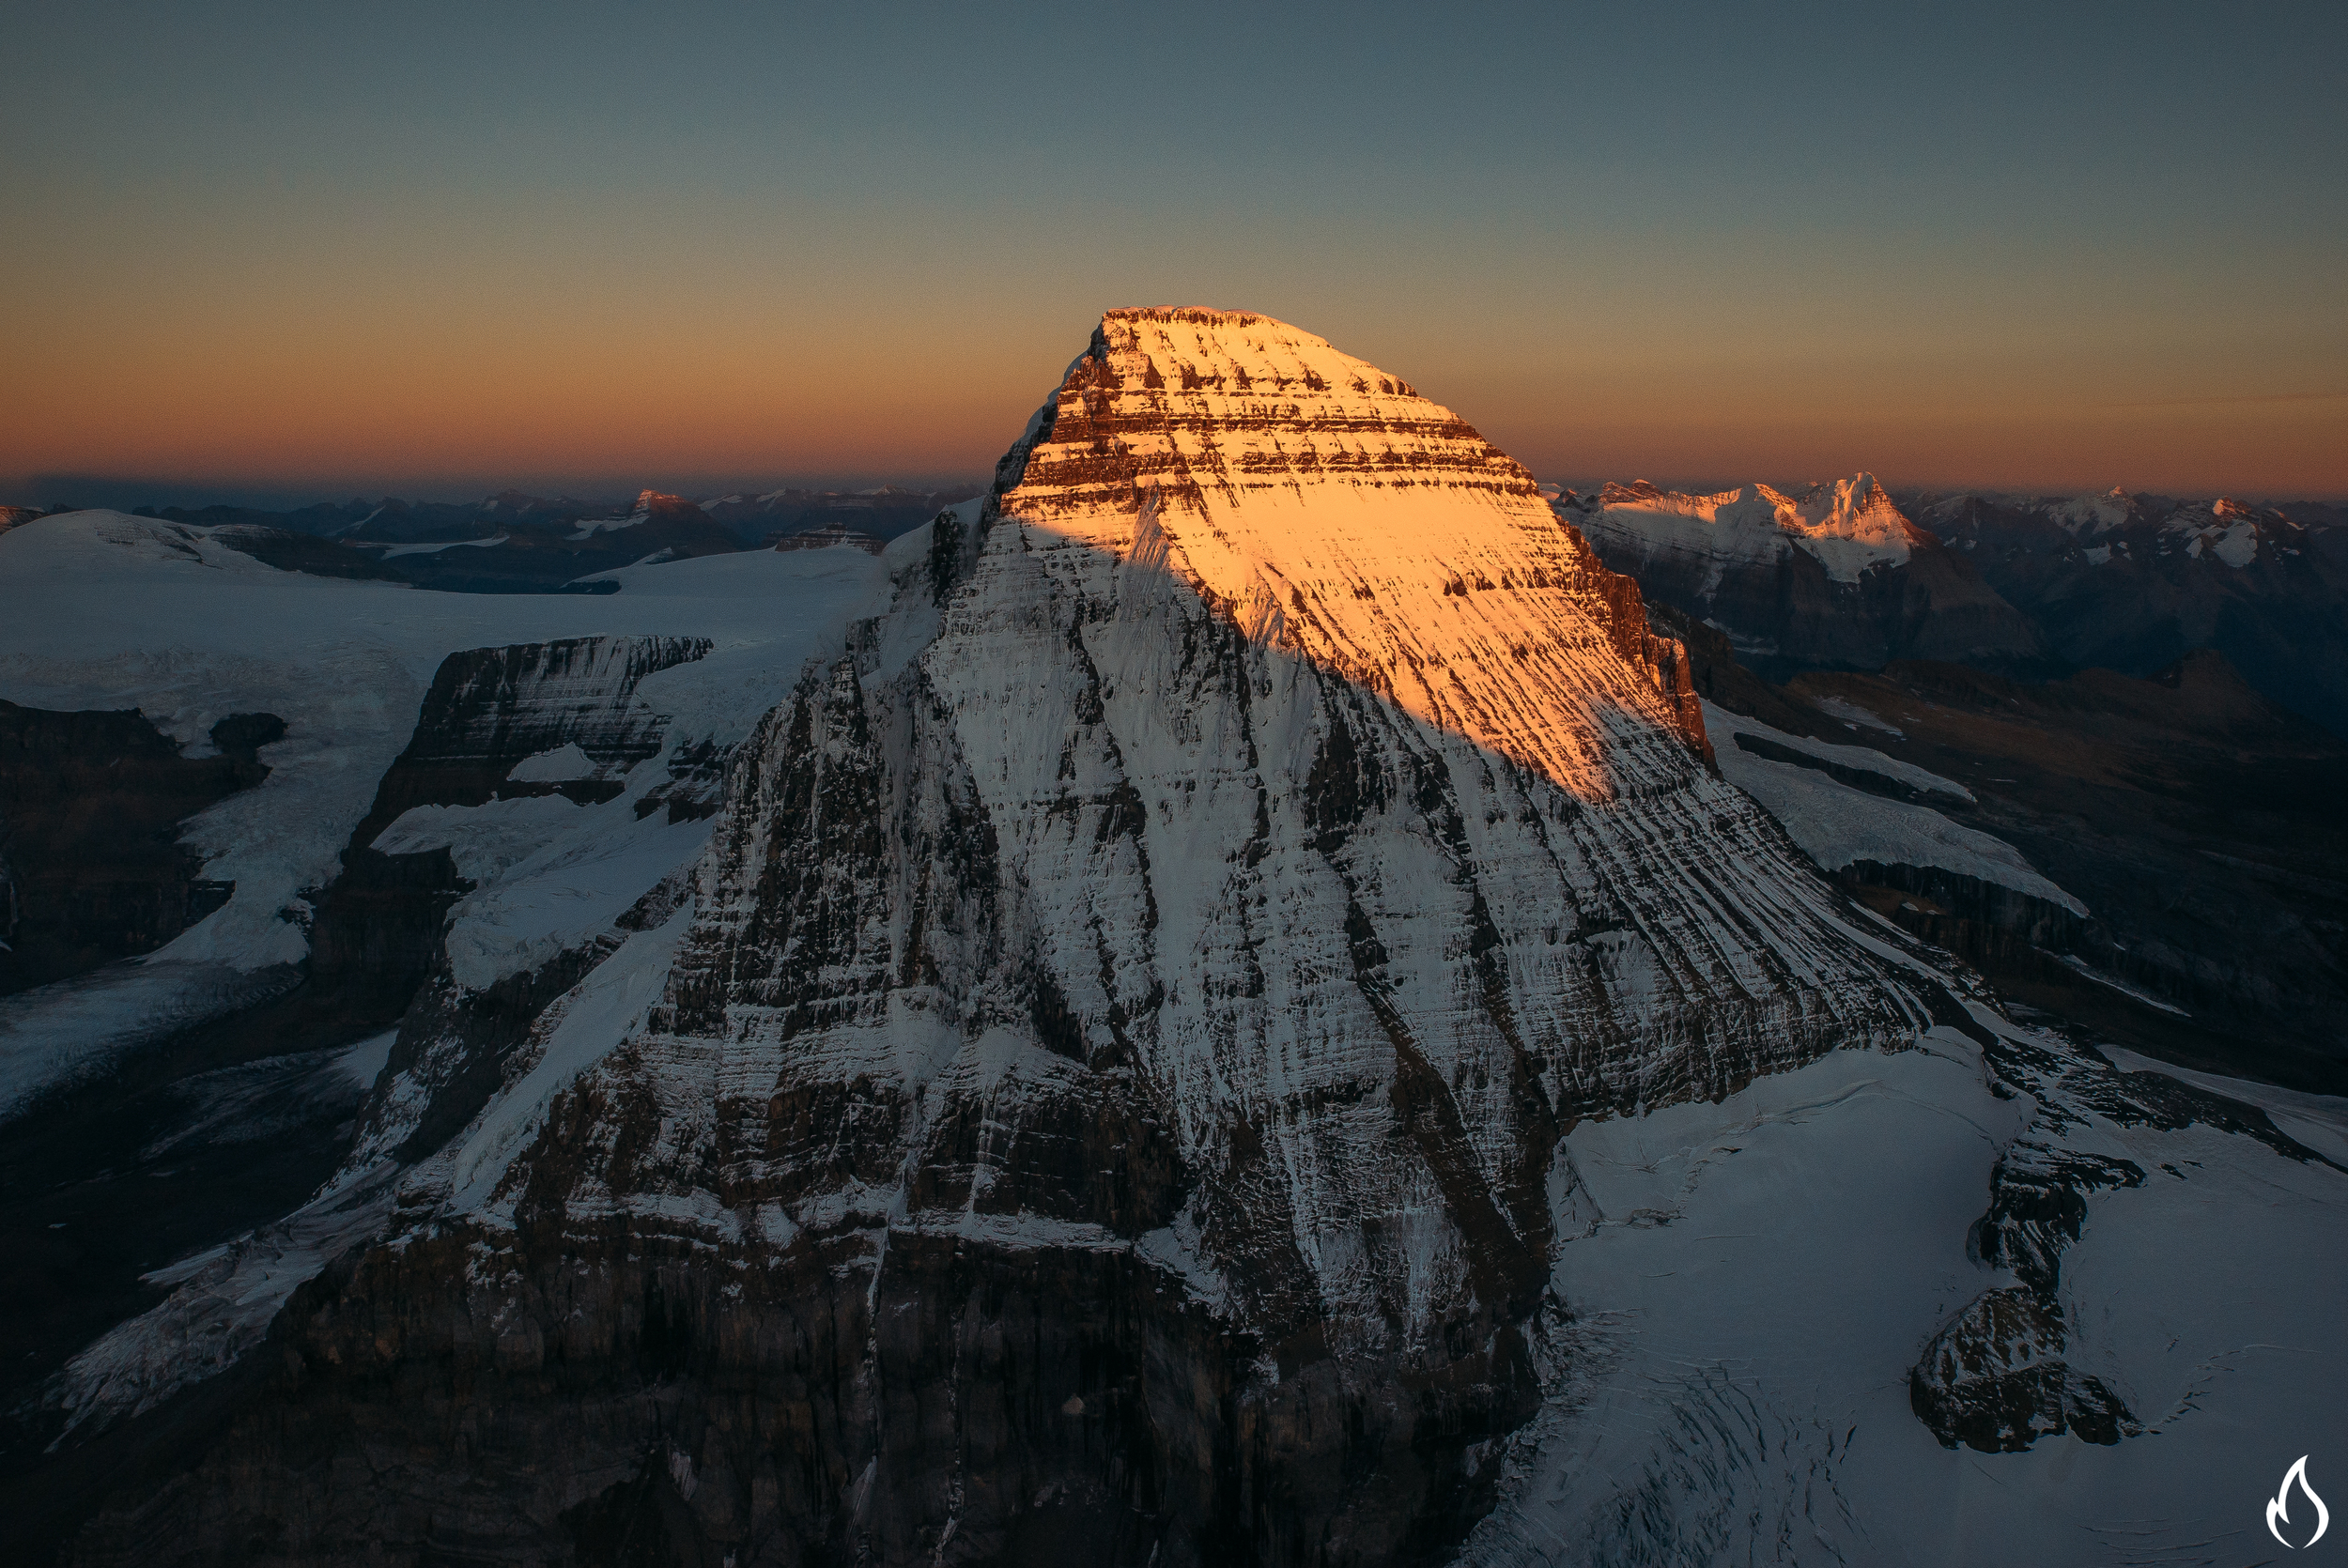 AndyBest_TravelAlberta_Selects-75.jpg